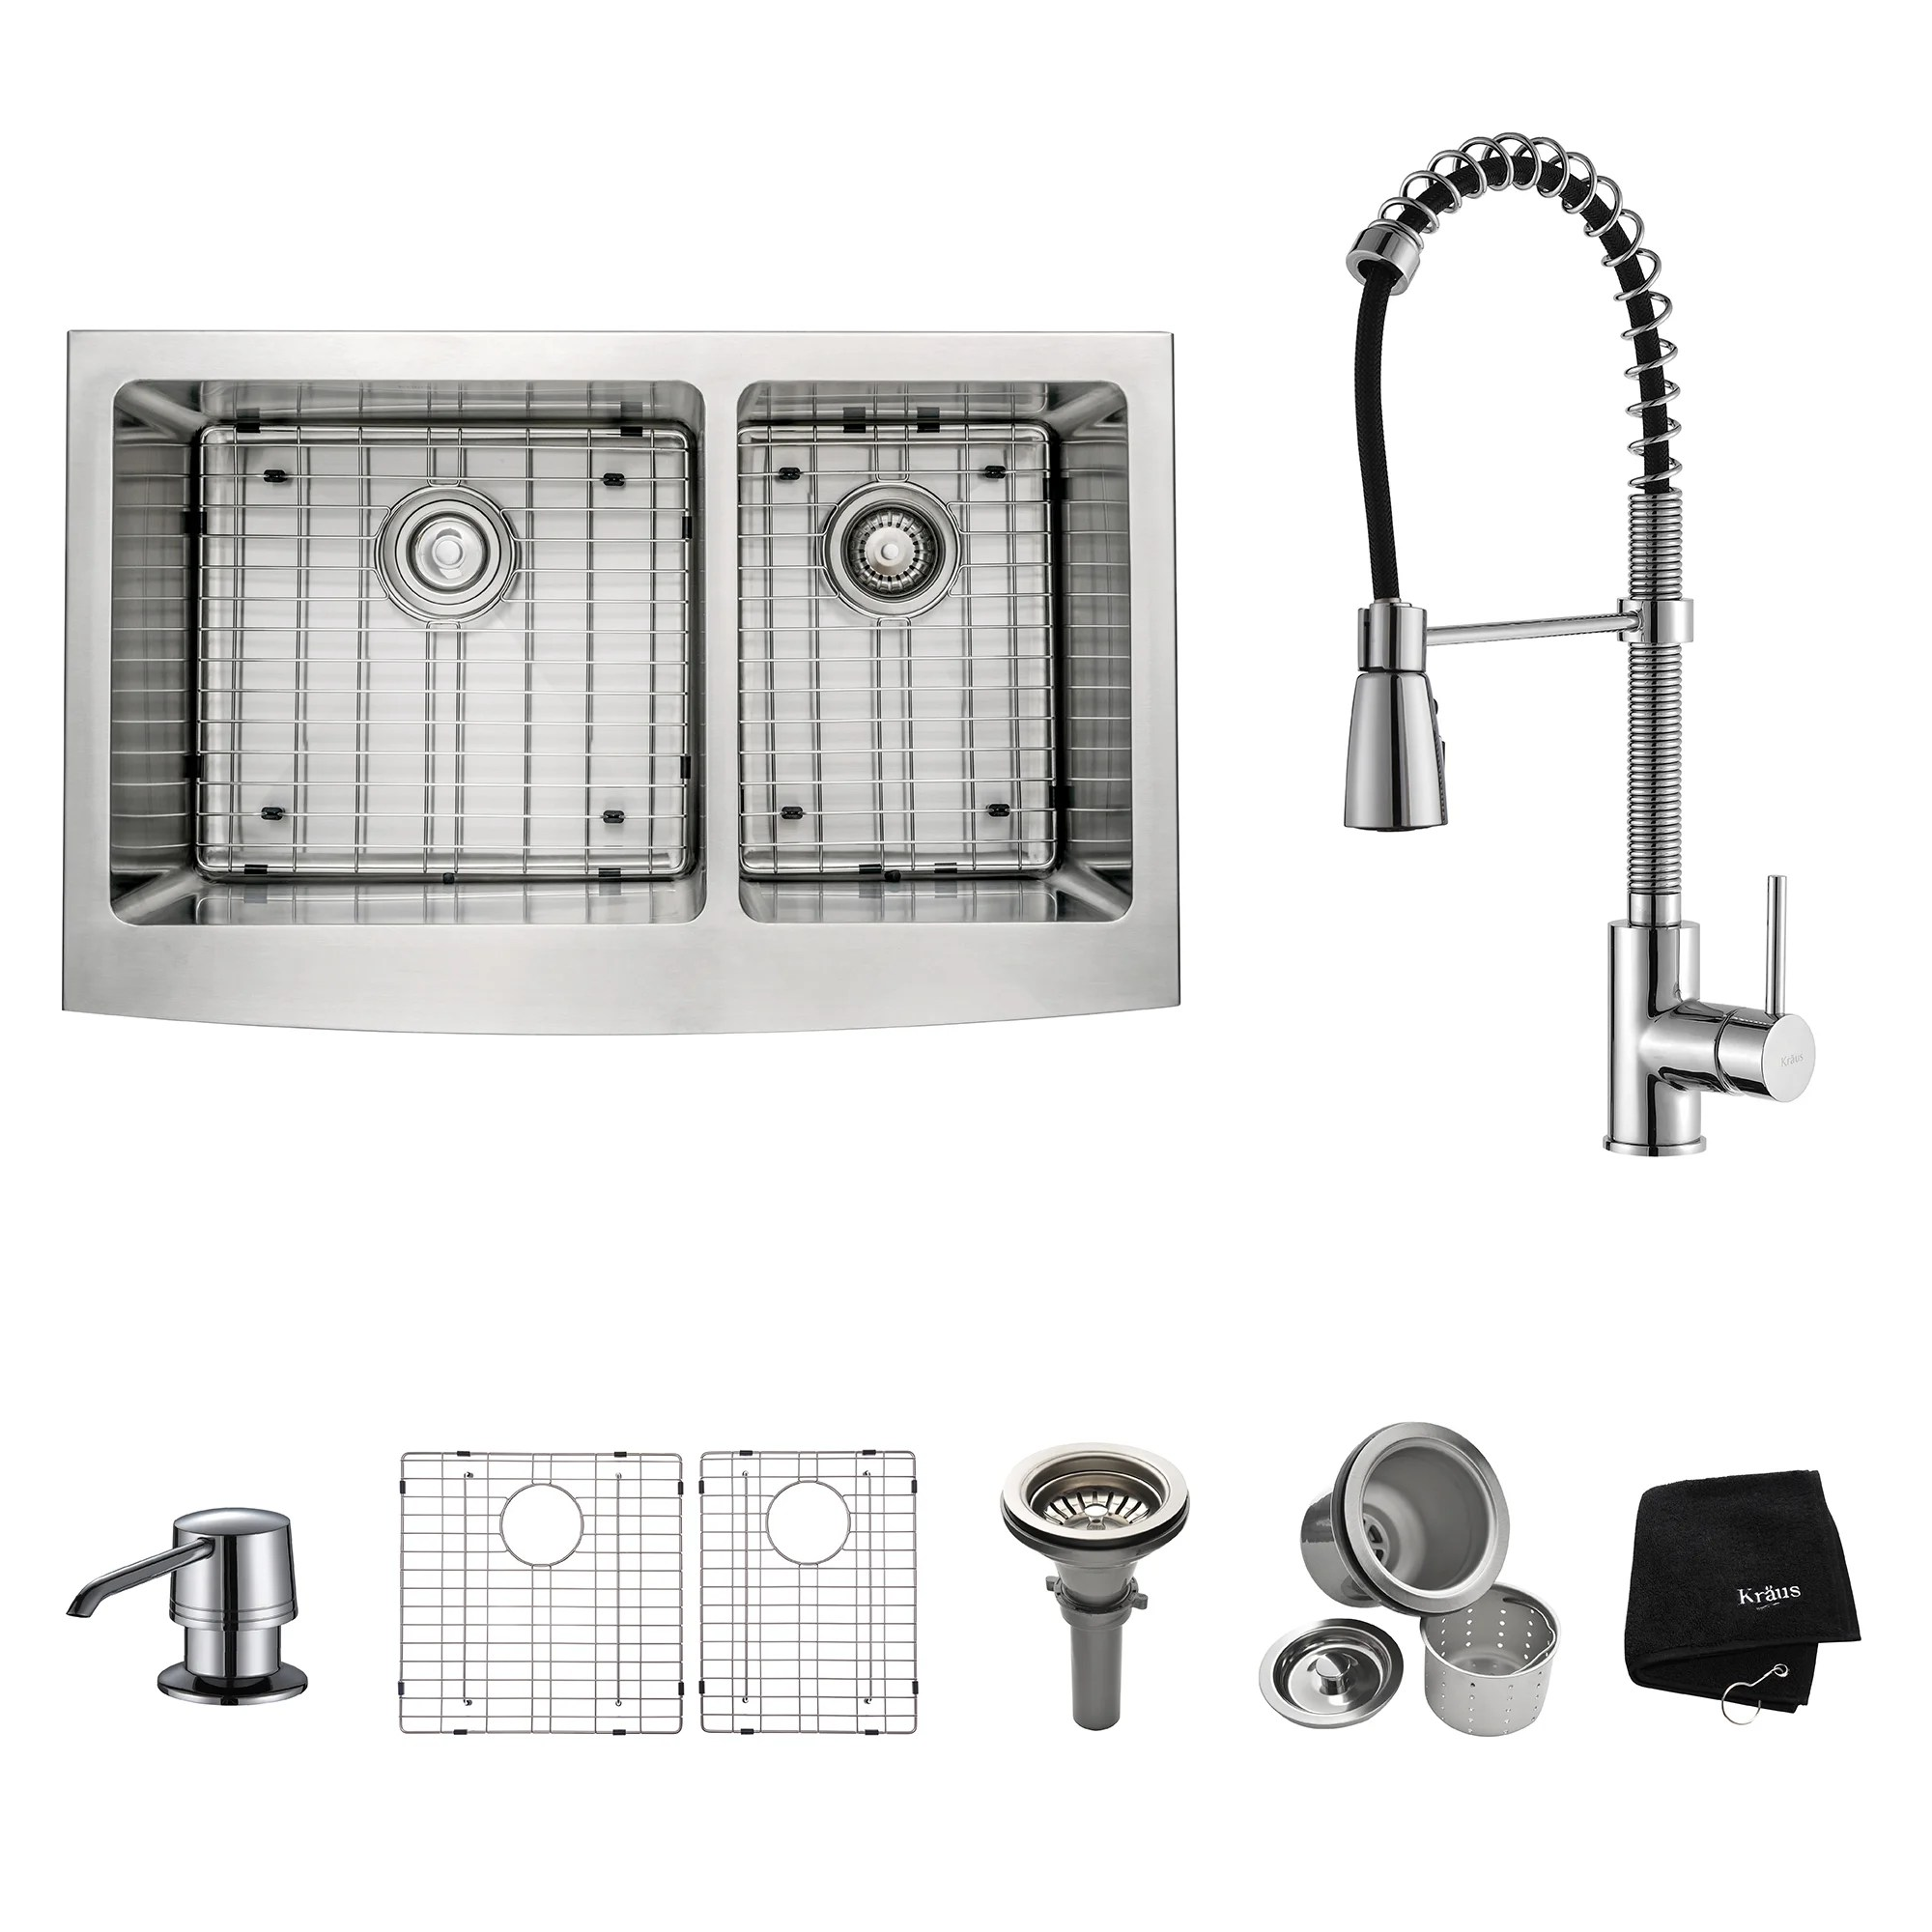 Overstock Farmhouse Sink Kraus Kitchen Combo Set Stainless Steel 33 Inch Farmhouse